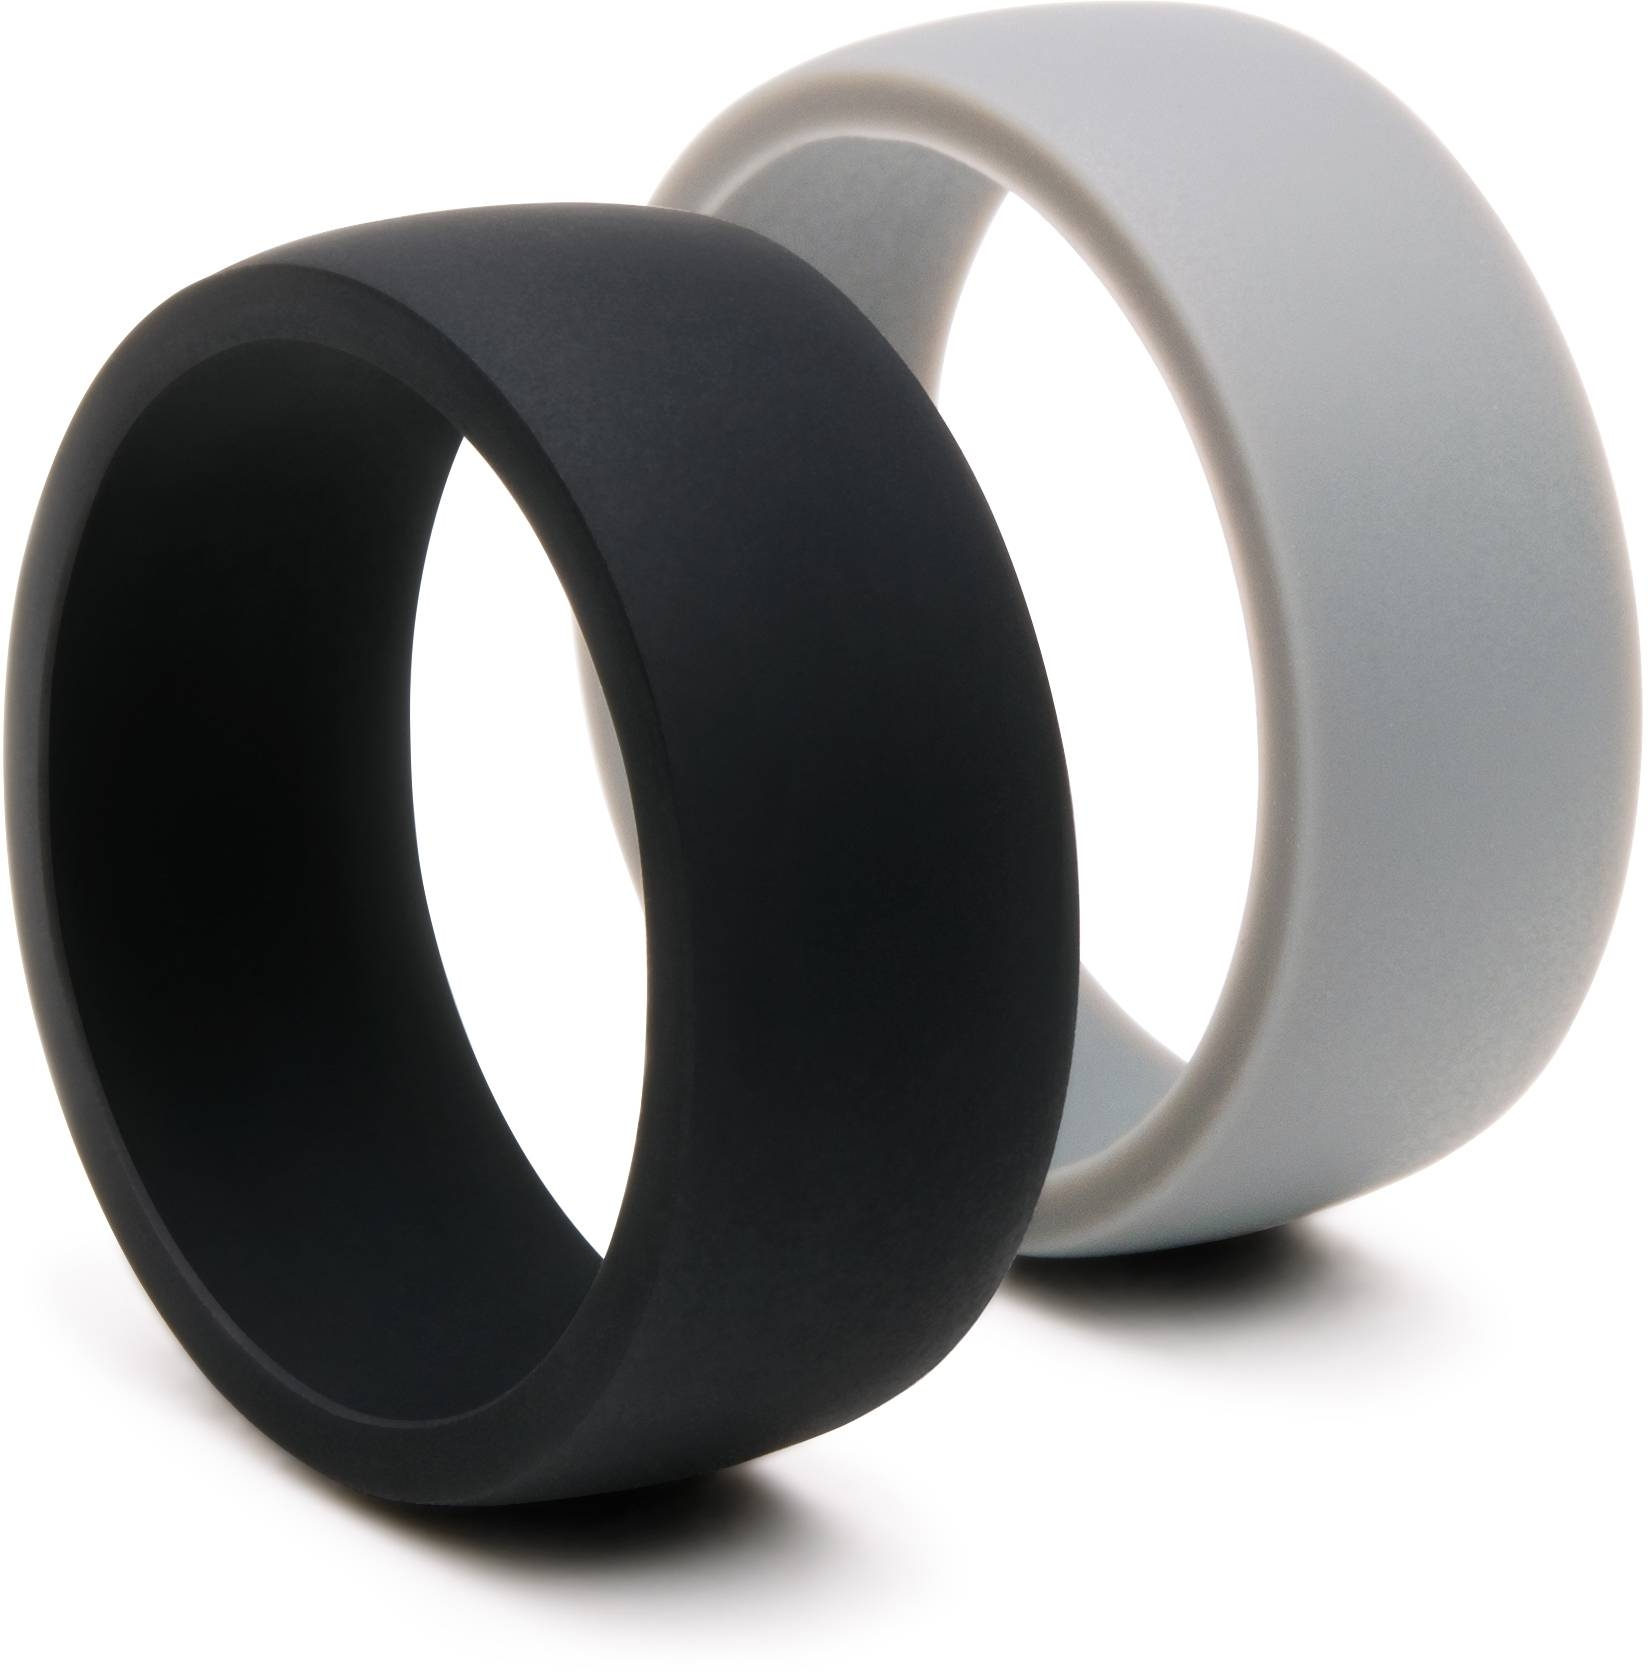 Silicone Wedding Ring, Silicone Wedding Band For Men, 2 Rings Pack For Silicone Wedding Bands (View 7 of 15)